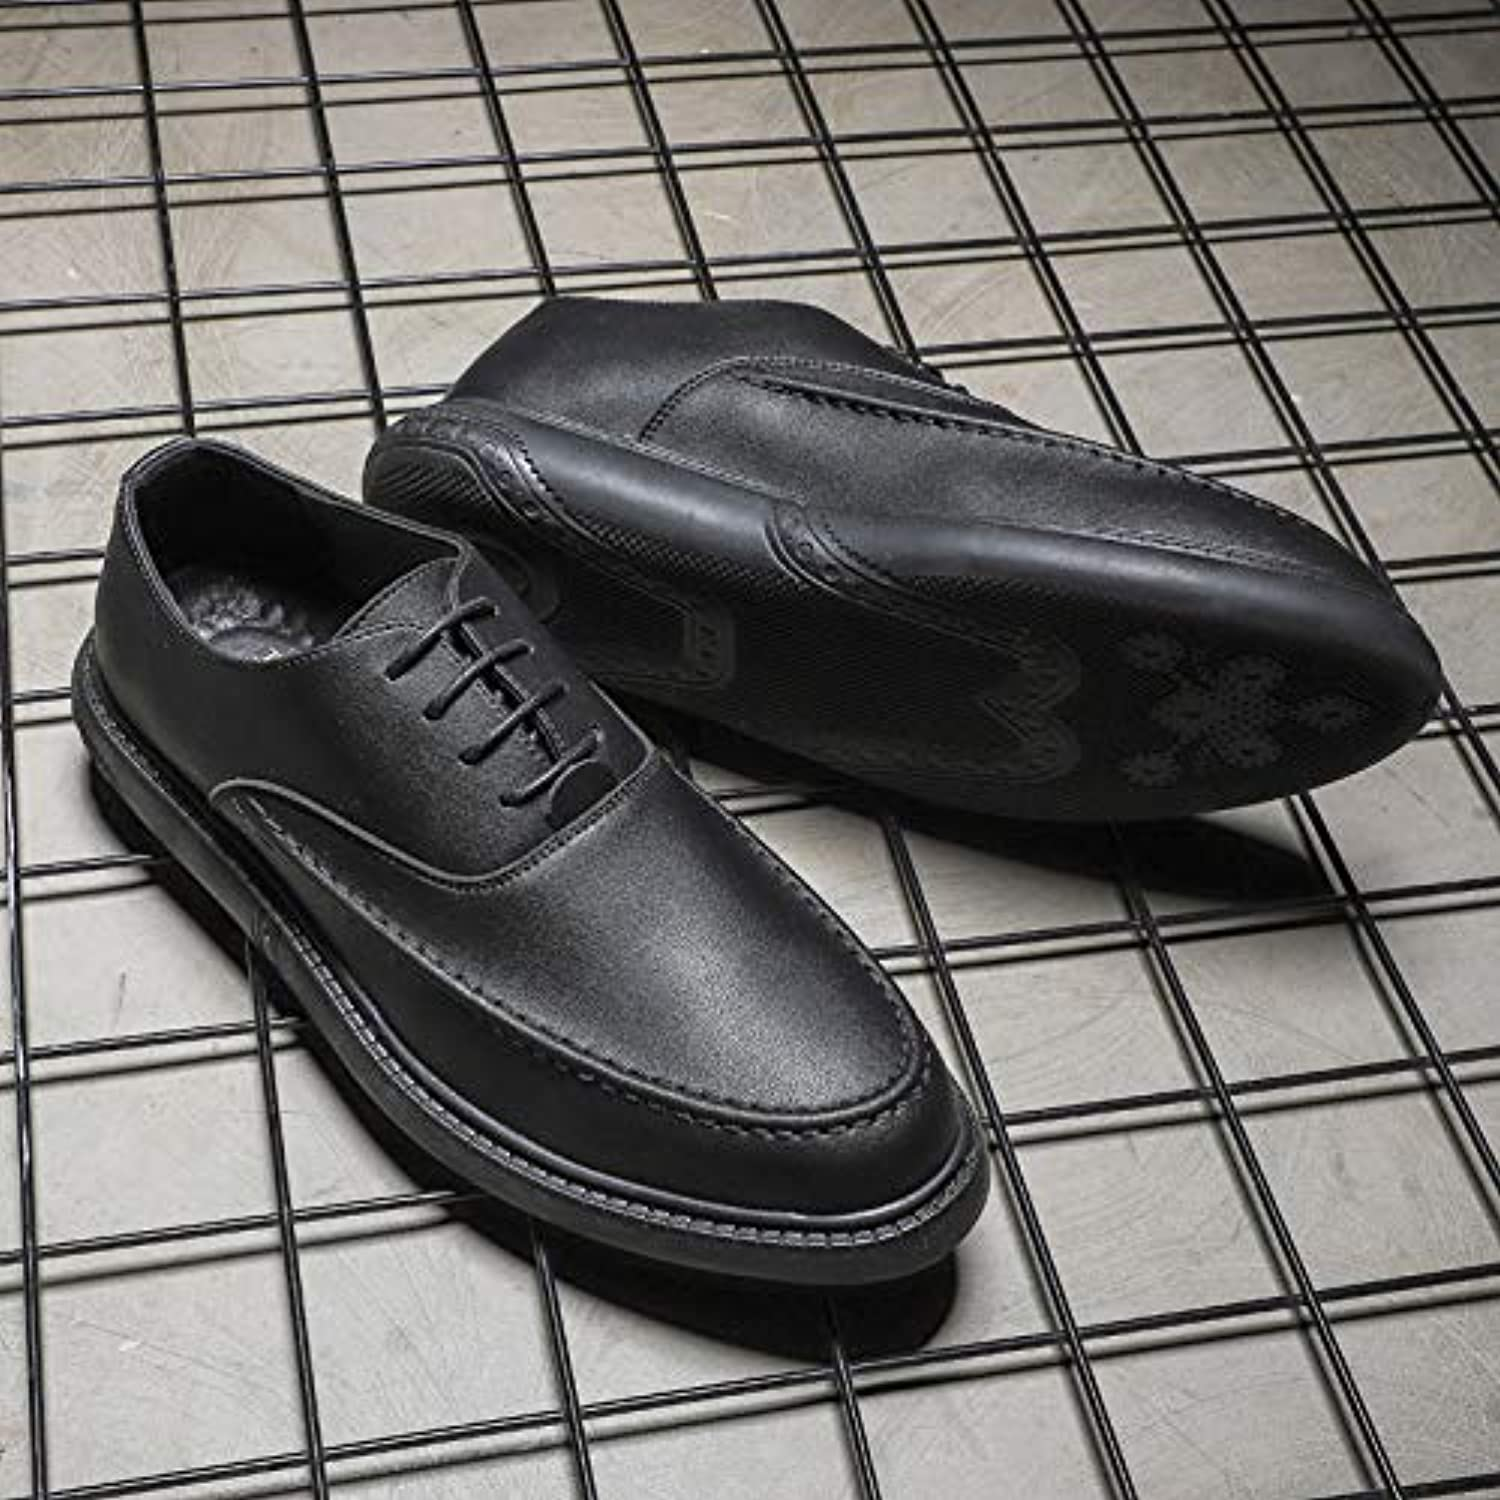 LOVDRAM Men'S Leather shoes Spring New Men'S shoes Korean Casual Wild Single shoes Summer Breathable Men'S Black shoes